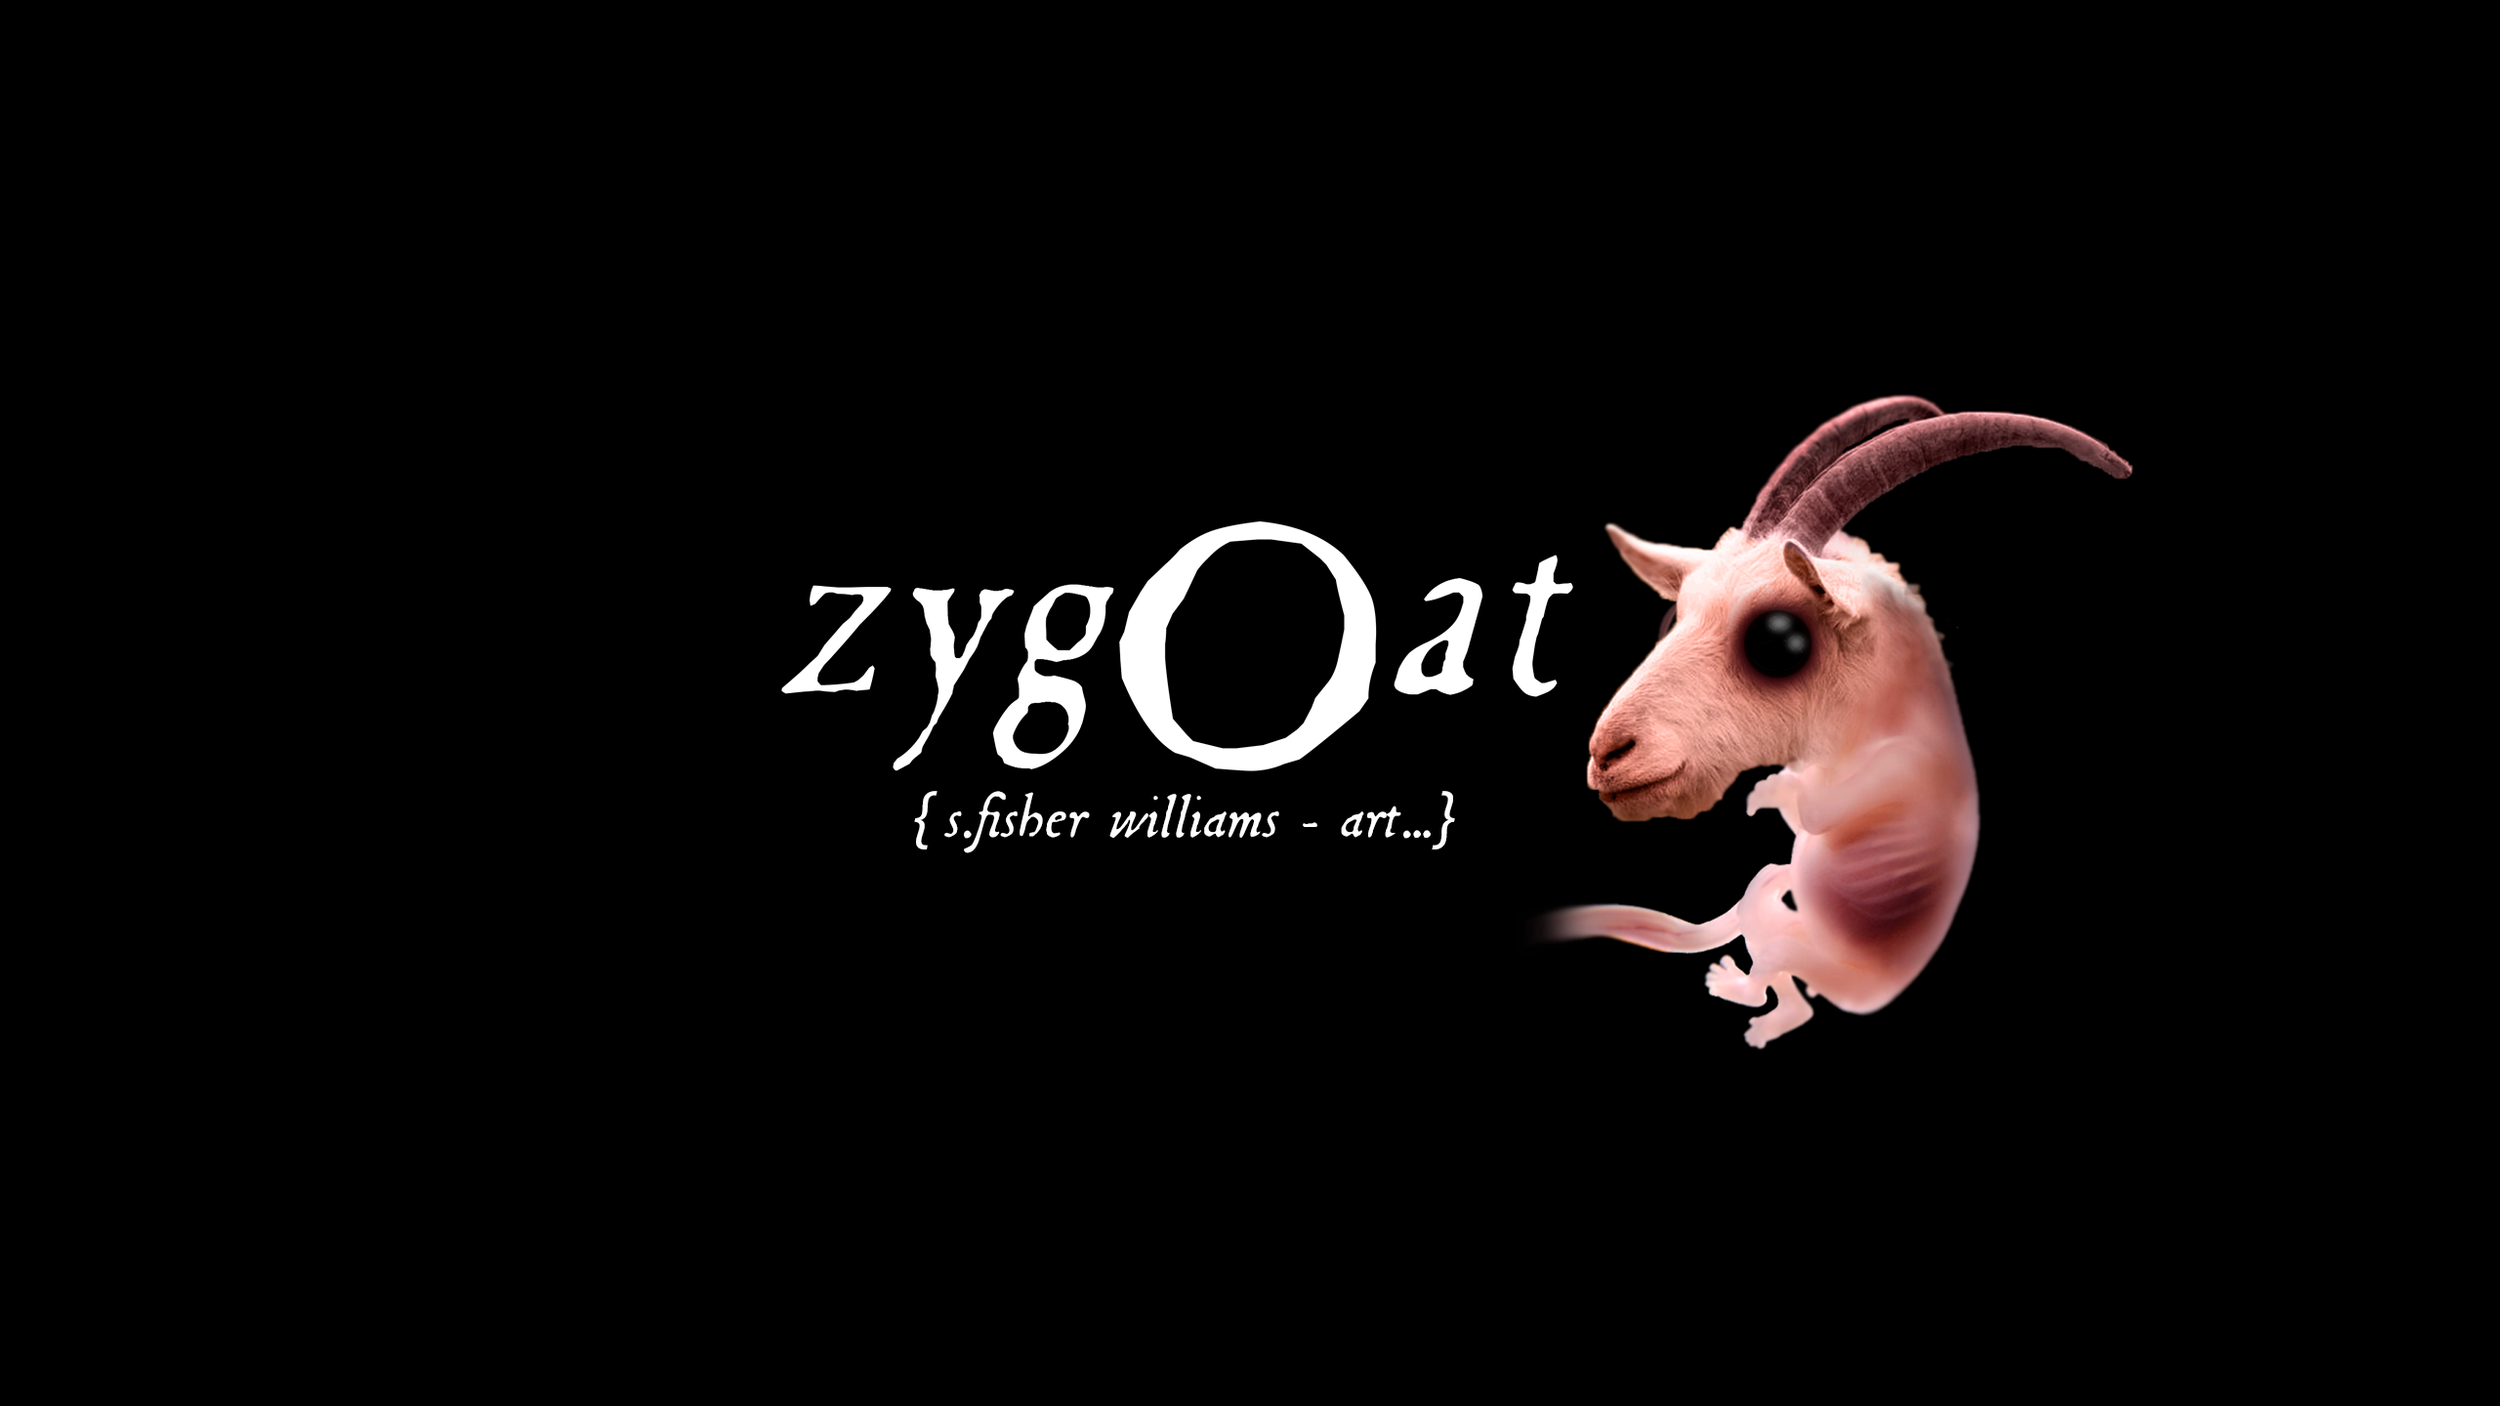 zygoat will become the face of my store…